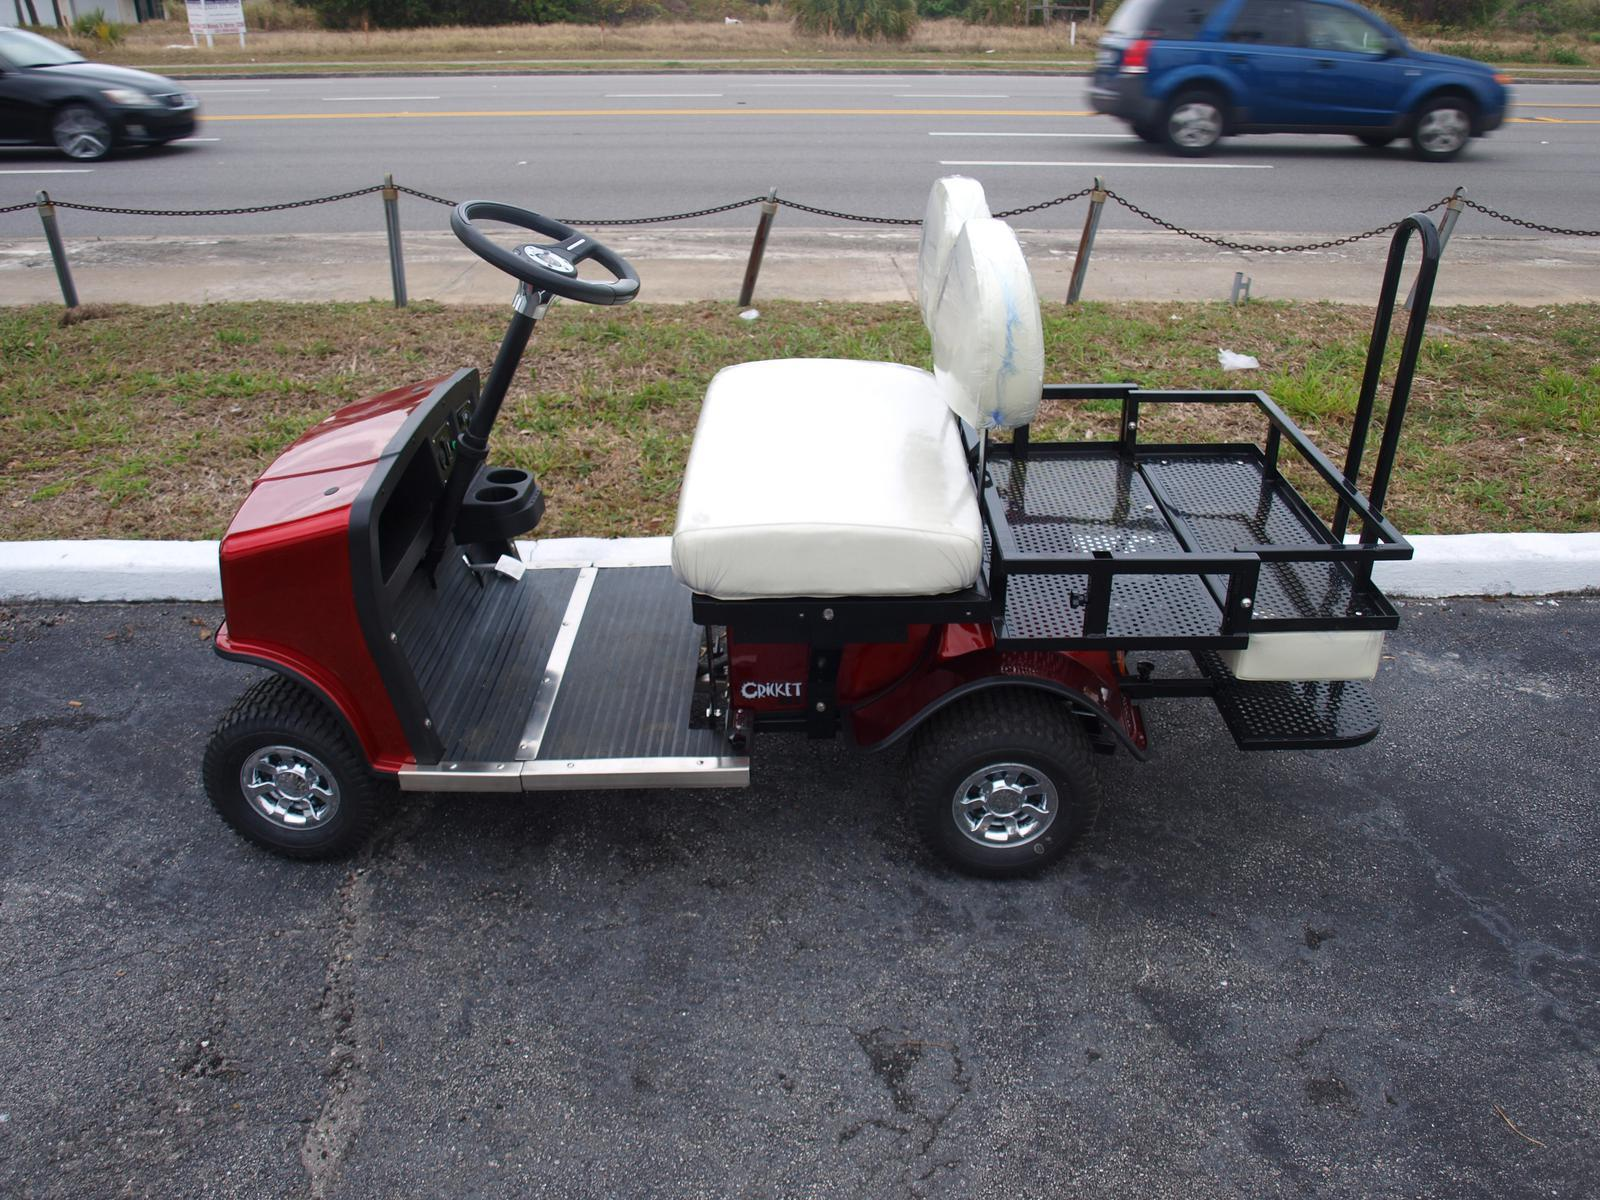 2019 Cricket Sx 3 Mini Golf Carts Great For Travel Trailers We Can